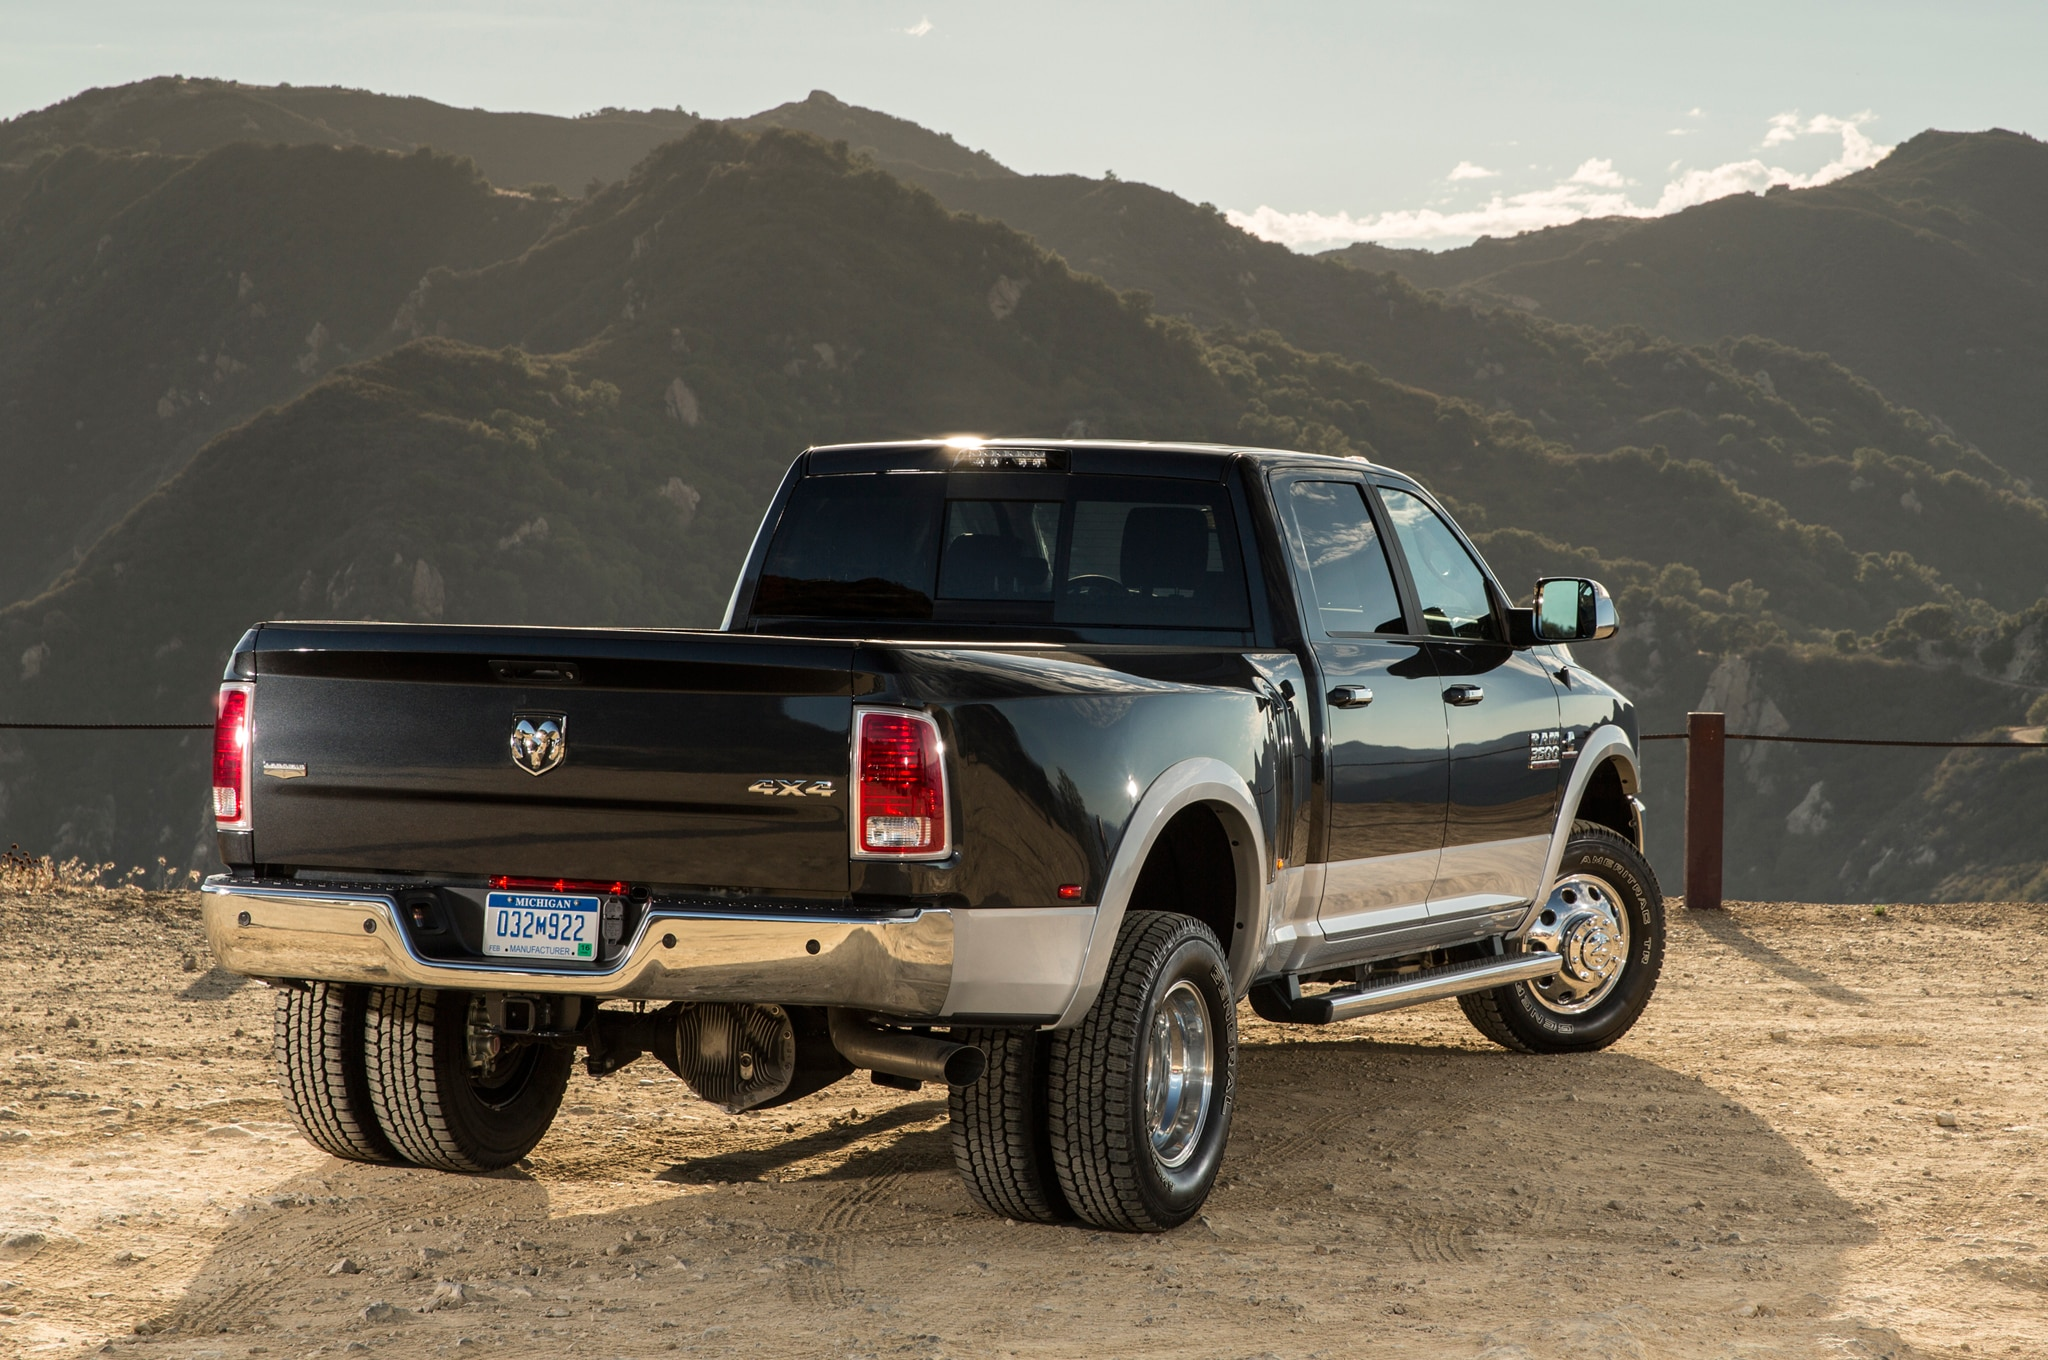 2015 Ram 2500, 3500 HD Revised for Higher Payload Rating